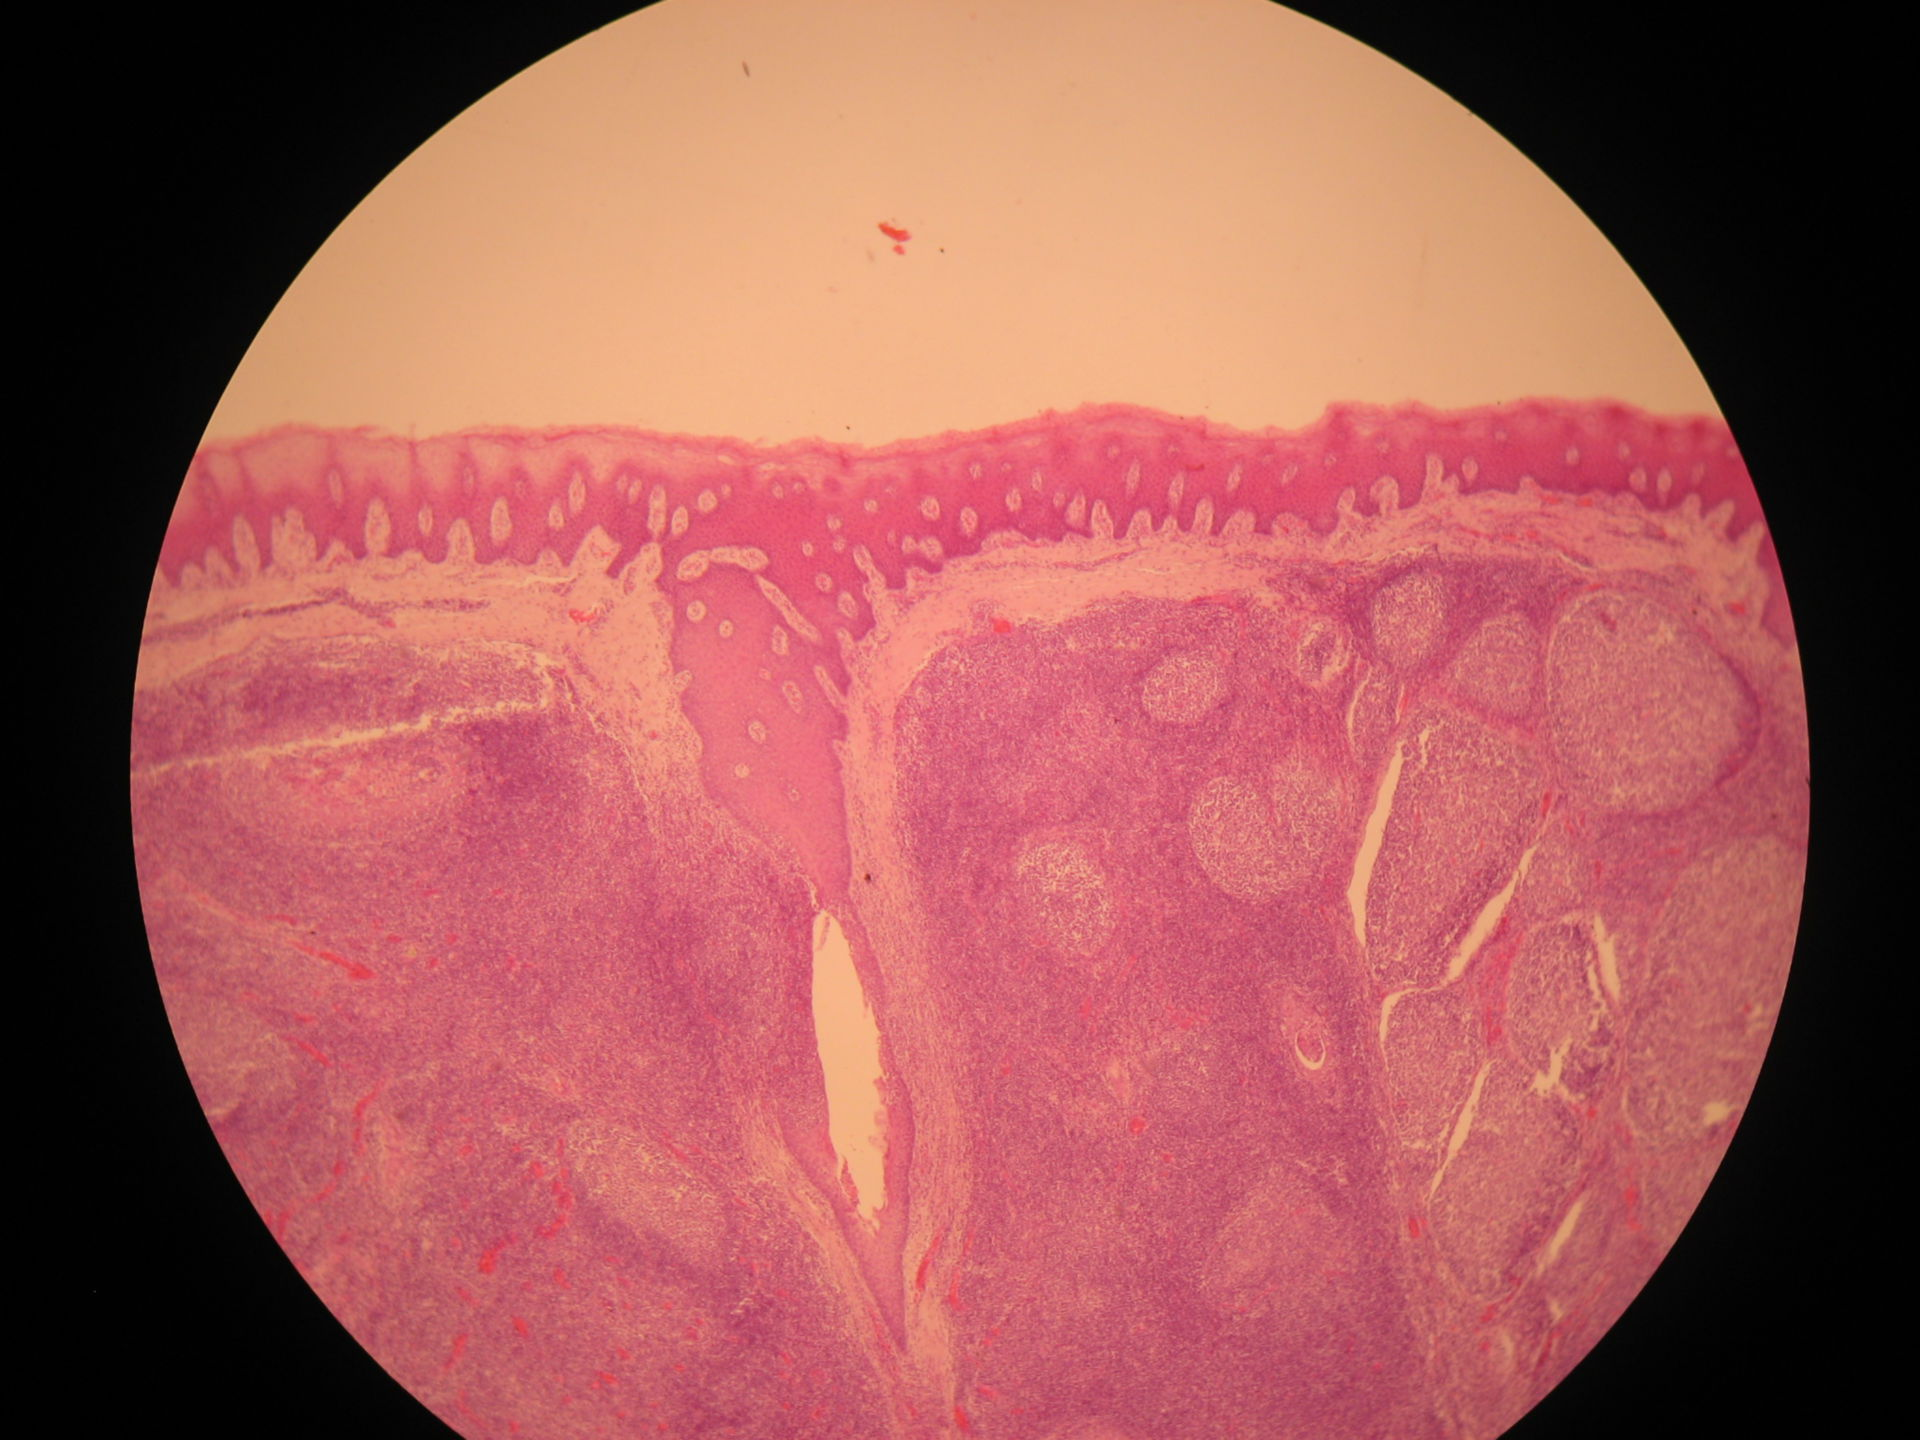 Veterinary Medicine: Palatine Tonsil of a Cattle(2) - Epithelium